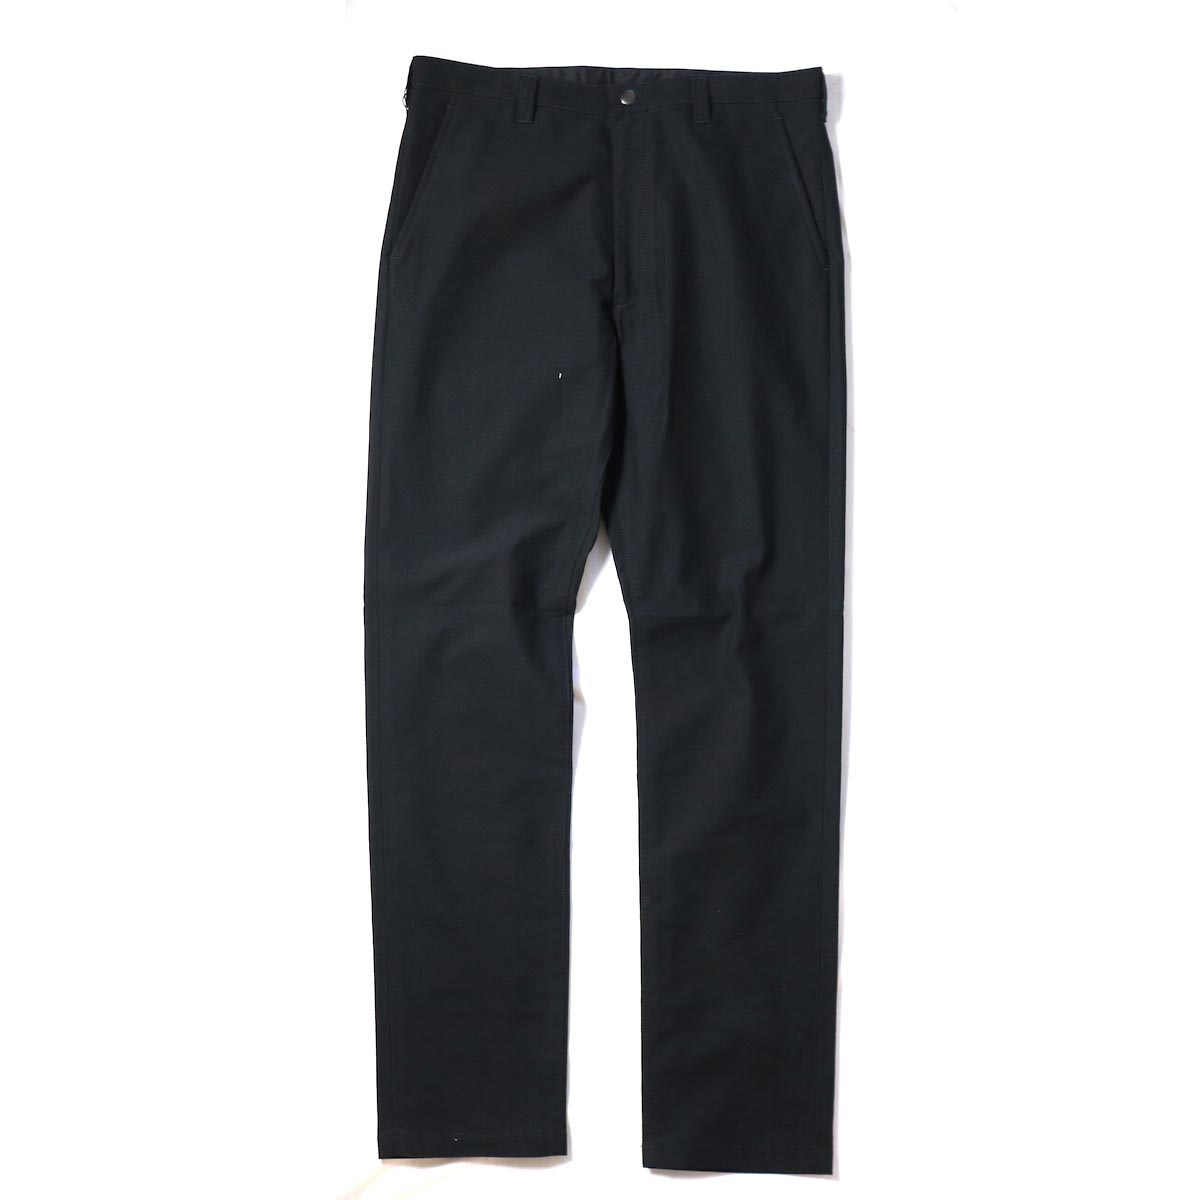 N.HOOLYWOOD / 282-CP04-029peg SLIM STRETCH PANT -Black